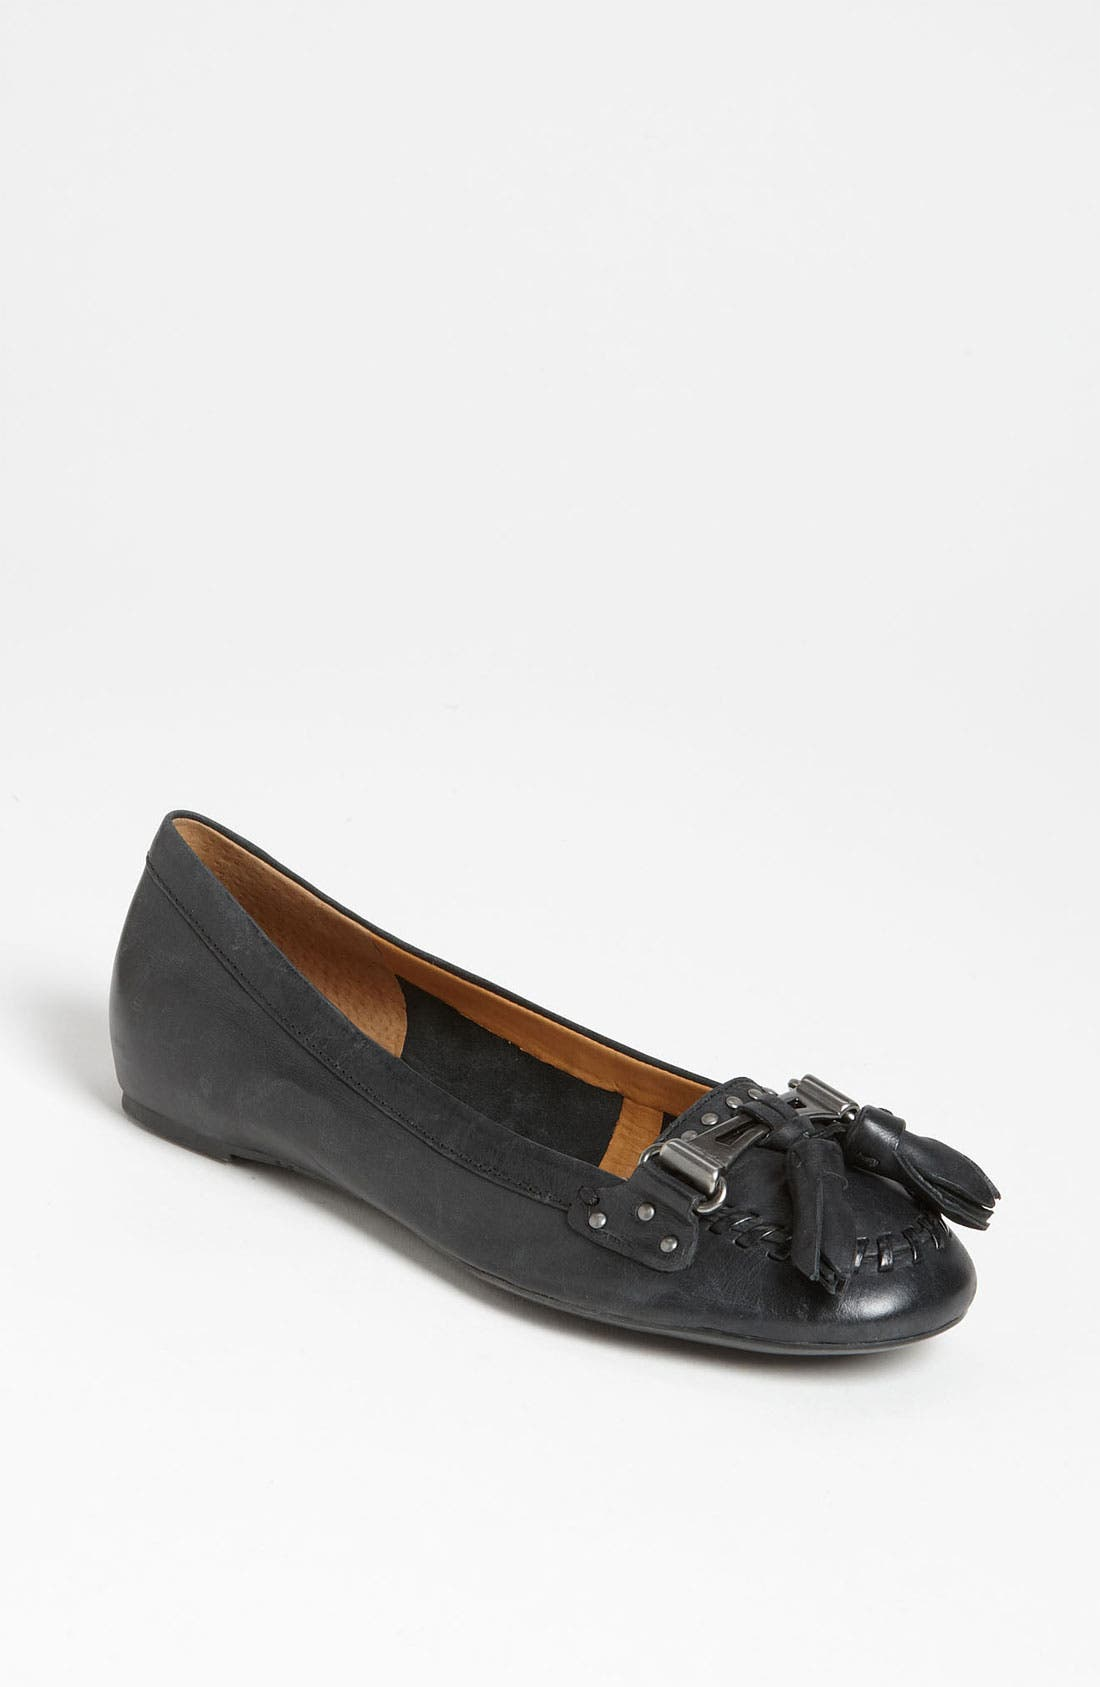 Alternate Image 1 Selected - Franco Sarto 'Aramo' Moccasin